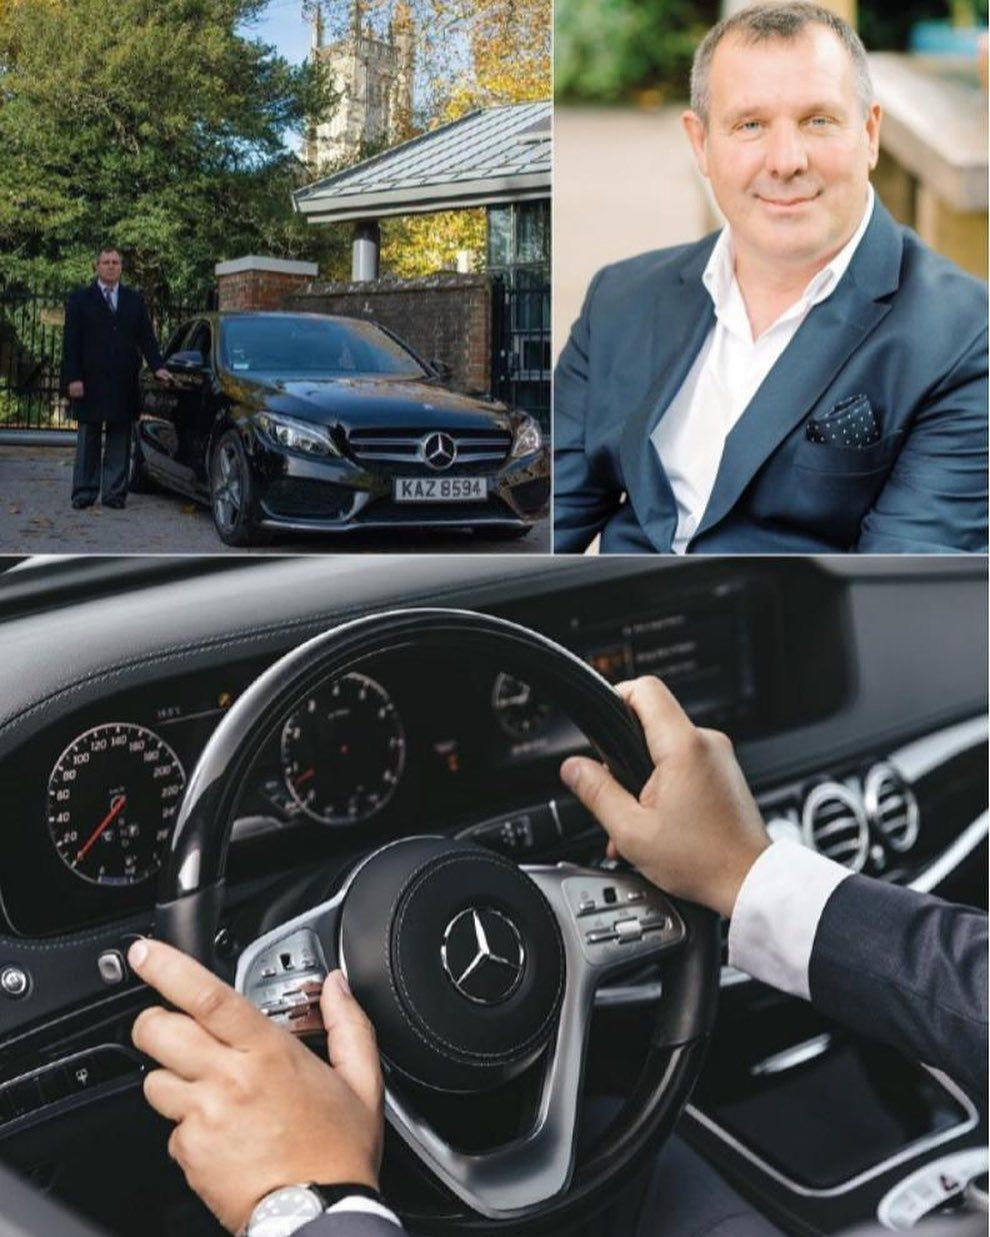 Your Private Chauffeur On Instagram Services We Offer Chauffeur Driven Car Hire Airport Transfers Up To 4 People In 2020 Car Hire Chauffeur Service Chauffeur